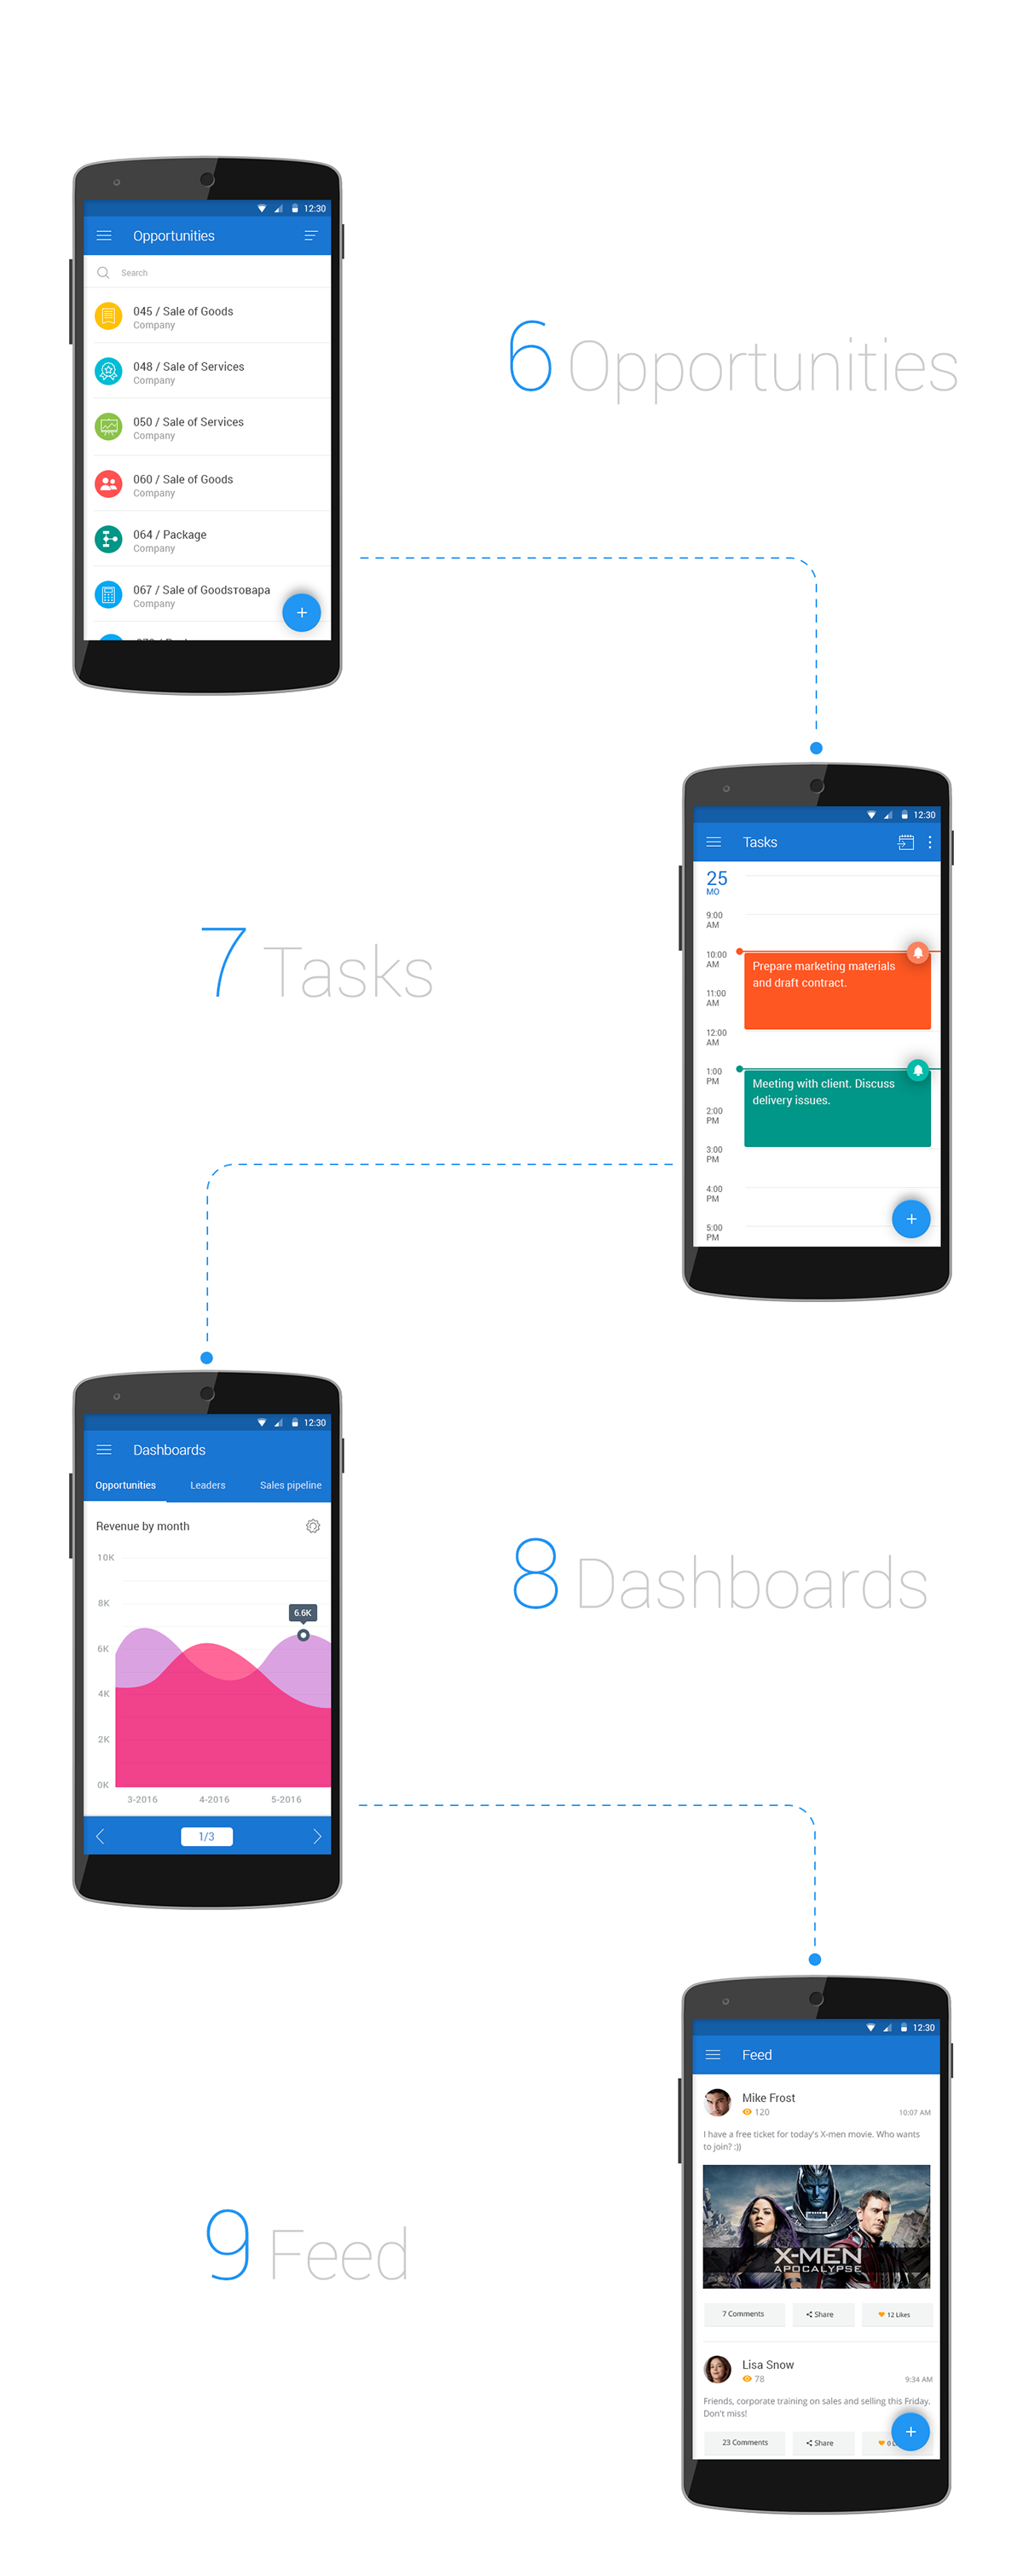 Free crm mobile app psd template — design resources